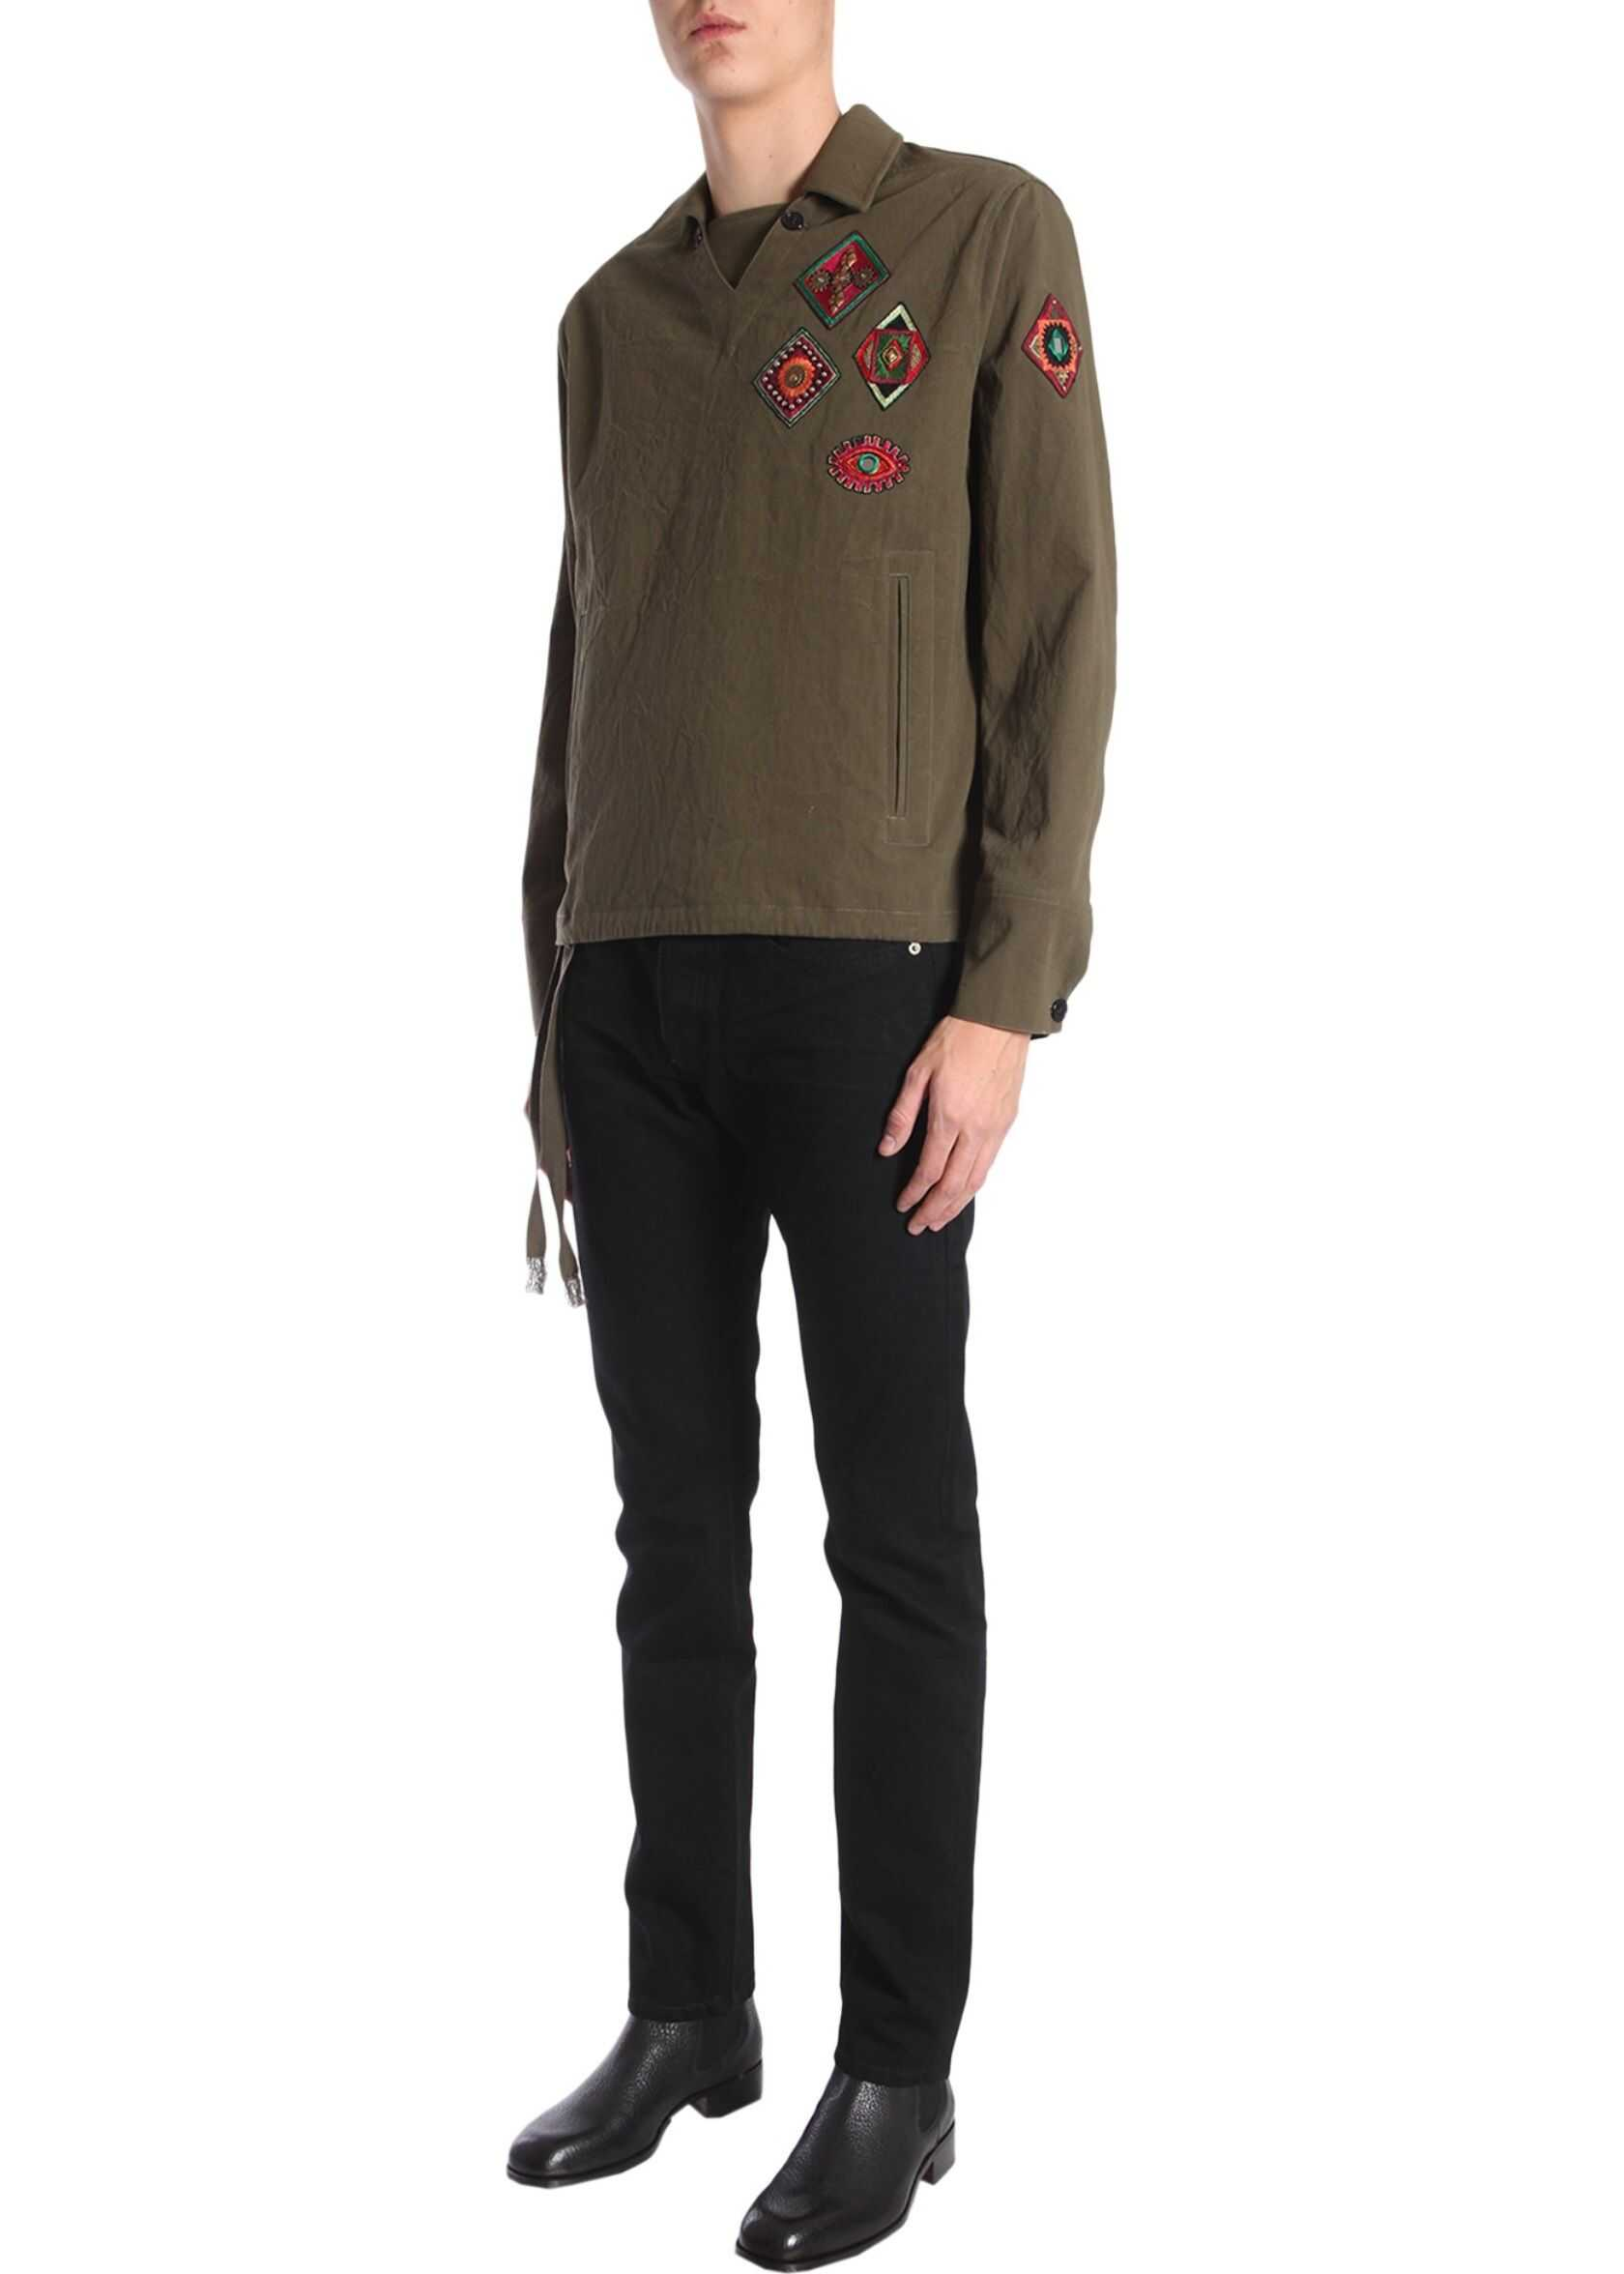 Tunic With Indian Patches